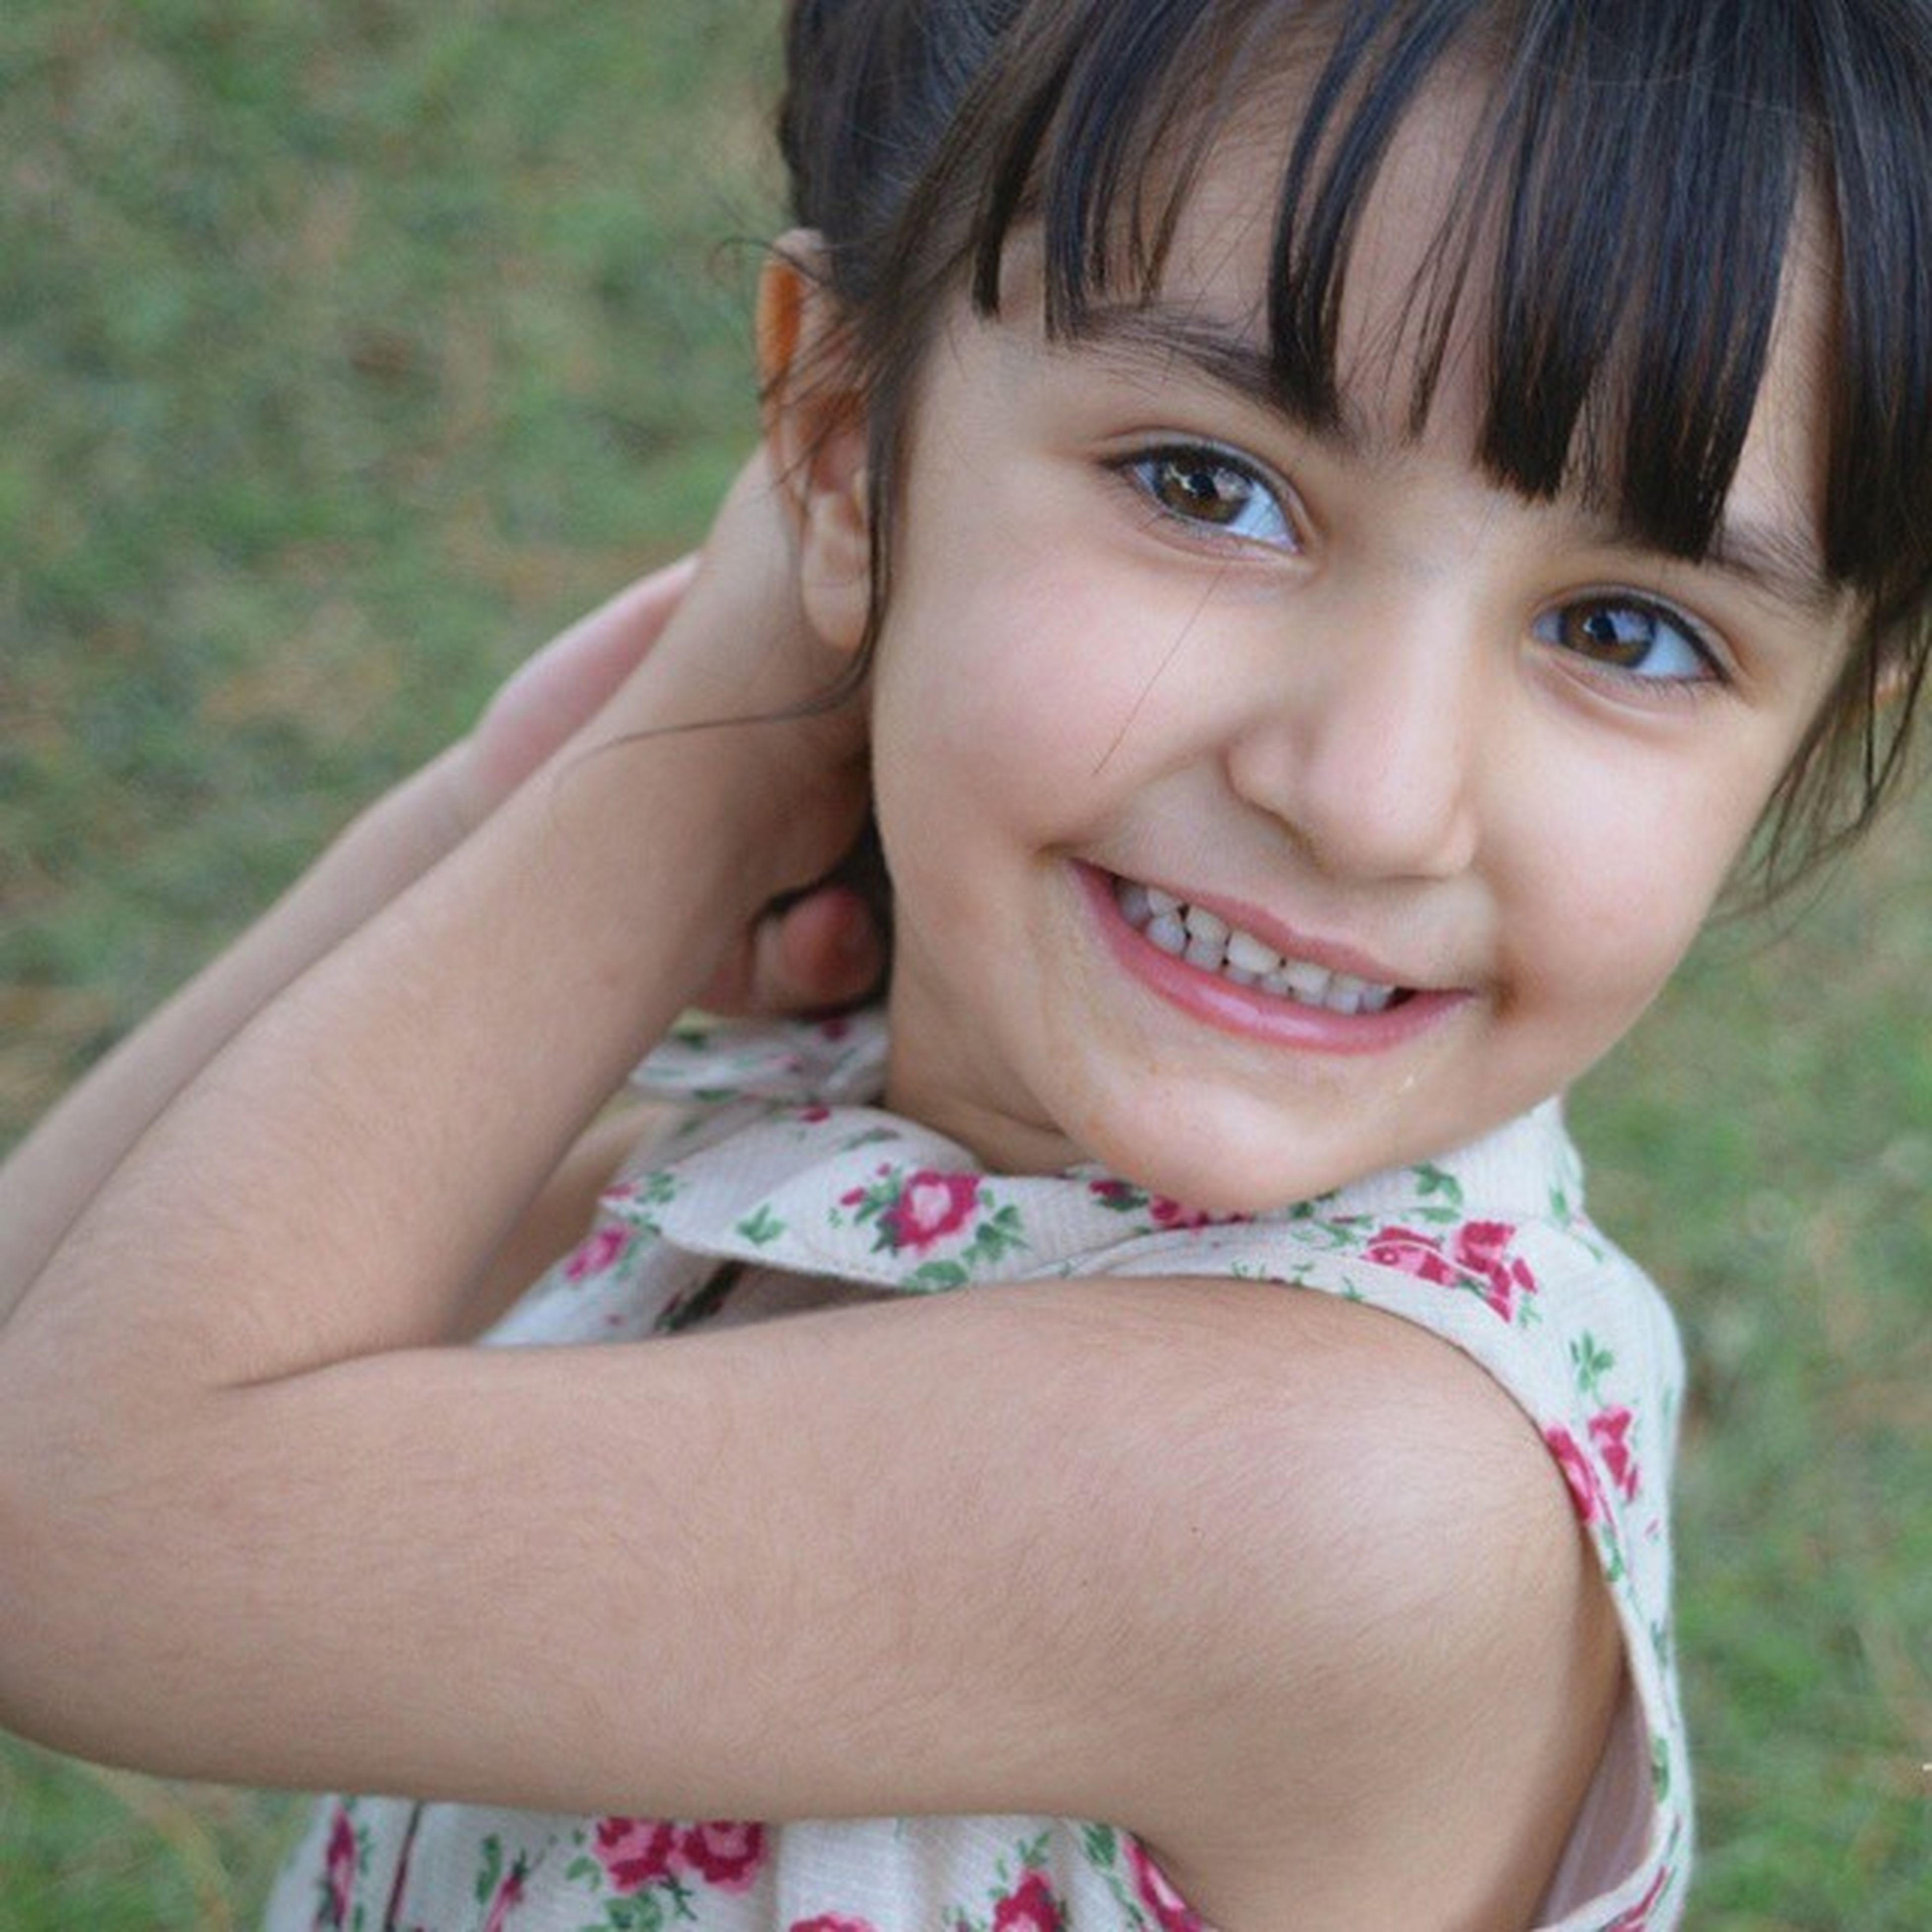 person, childhood, elementary age, innocence, girls, portrait, looking at camera, cute, lifestyles, leisure activity, focus on foreground, smiling, front view, headshot, boys, happiness, casual clothing, close-up